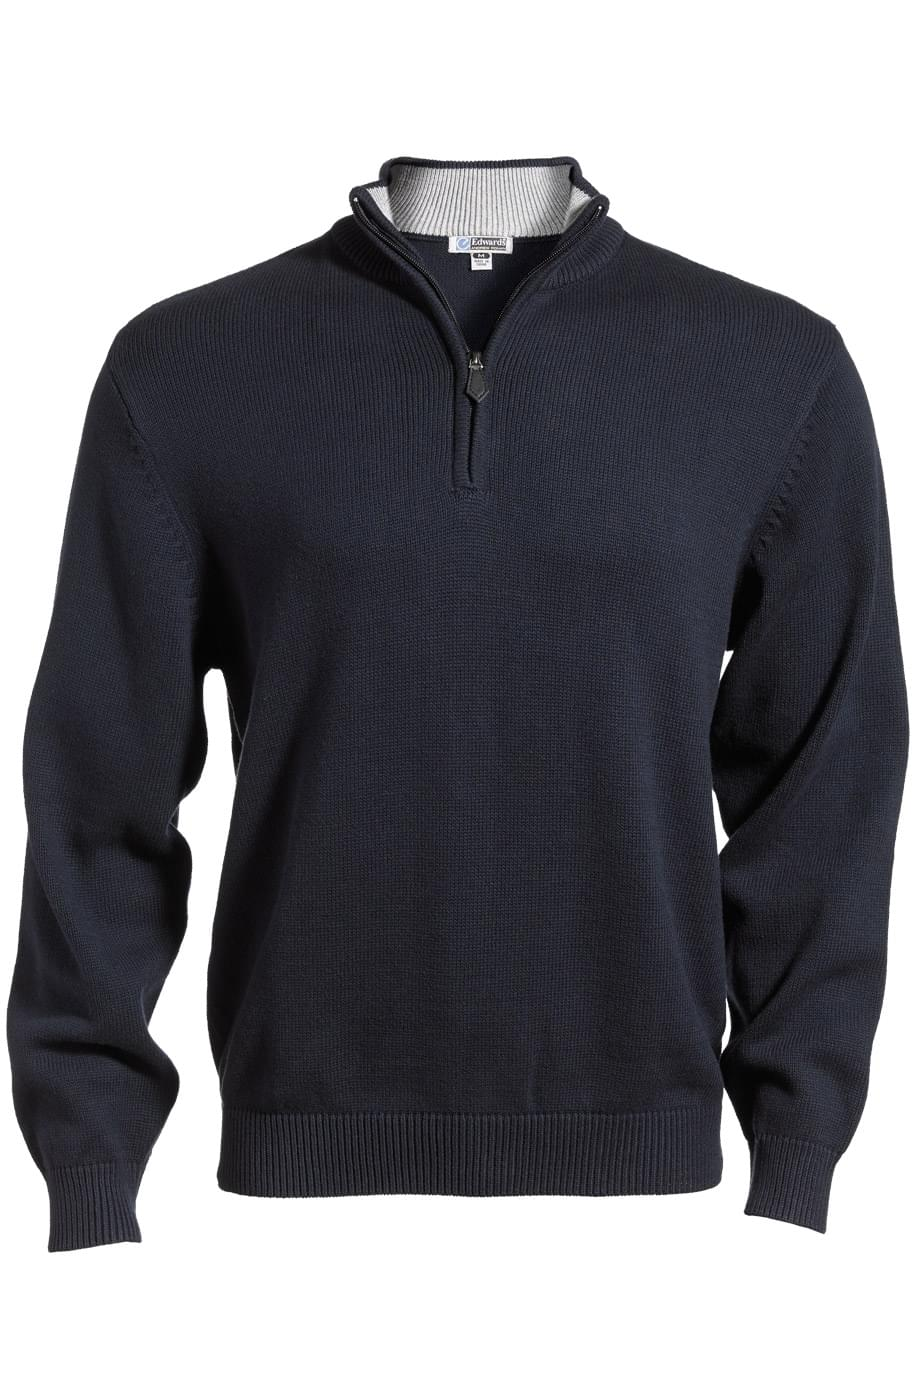 QUARTER-ZIP JERSEY KNIT SWEATER